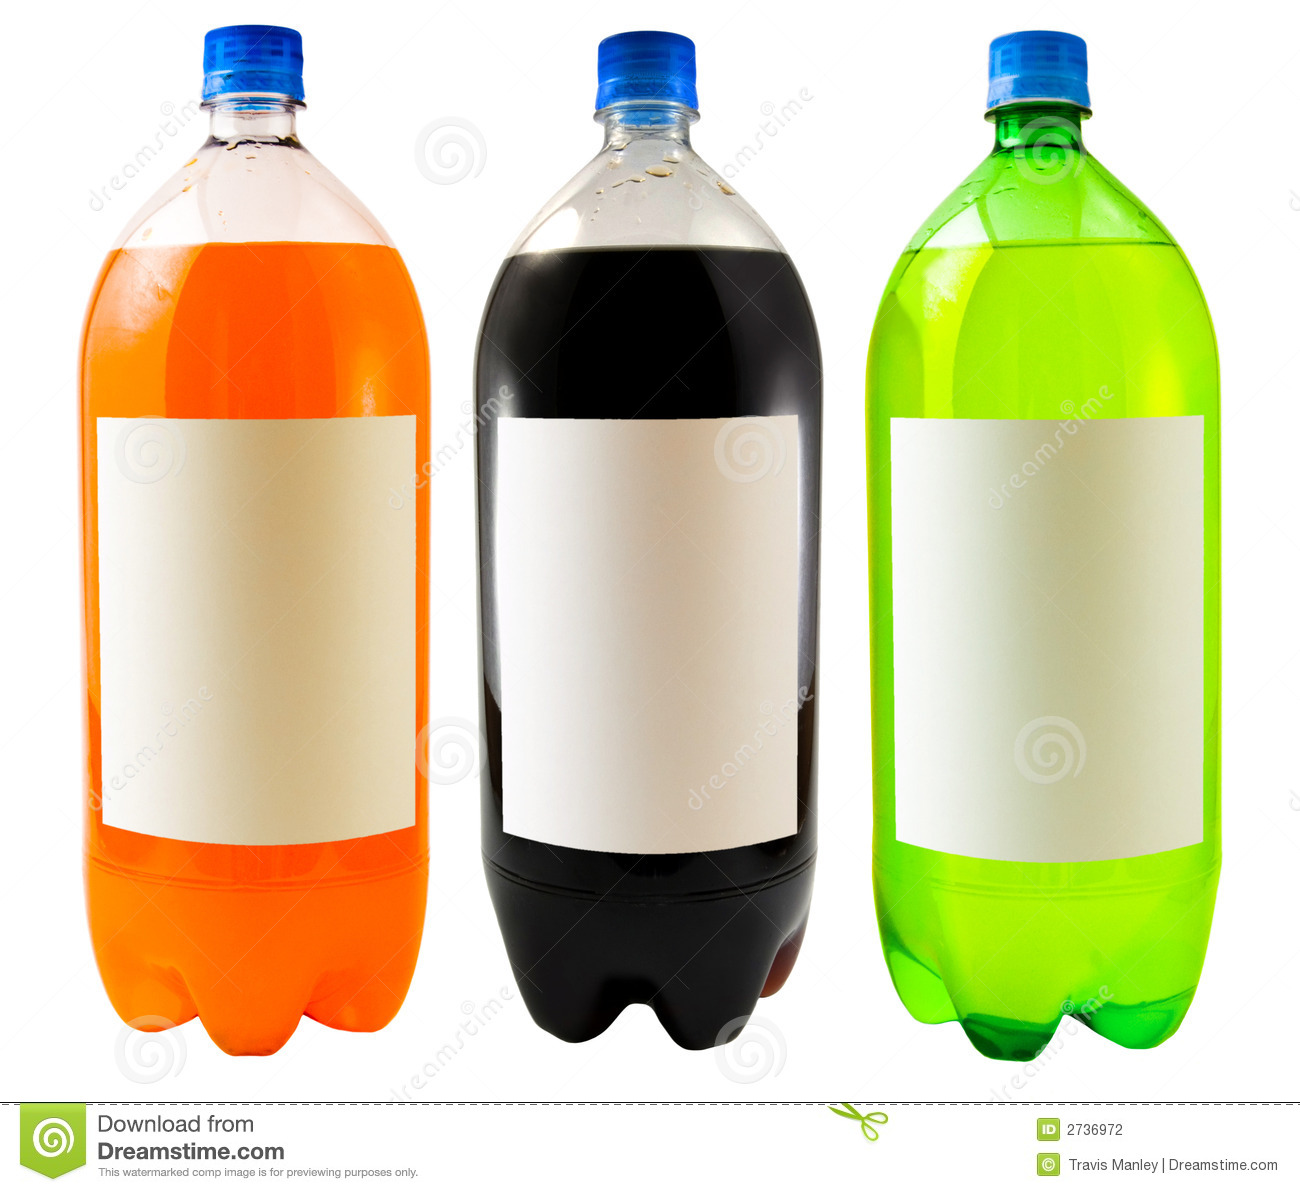 close up on three soda bottles isolated on a white background.